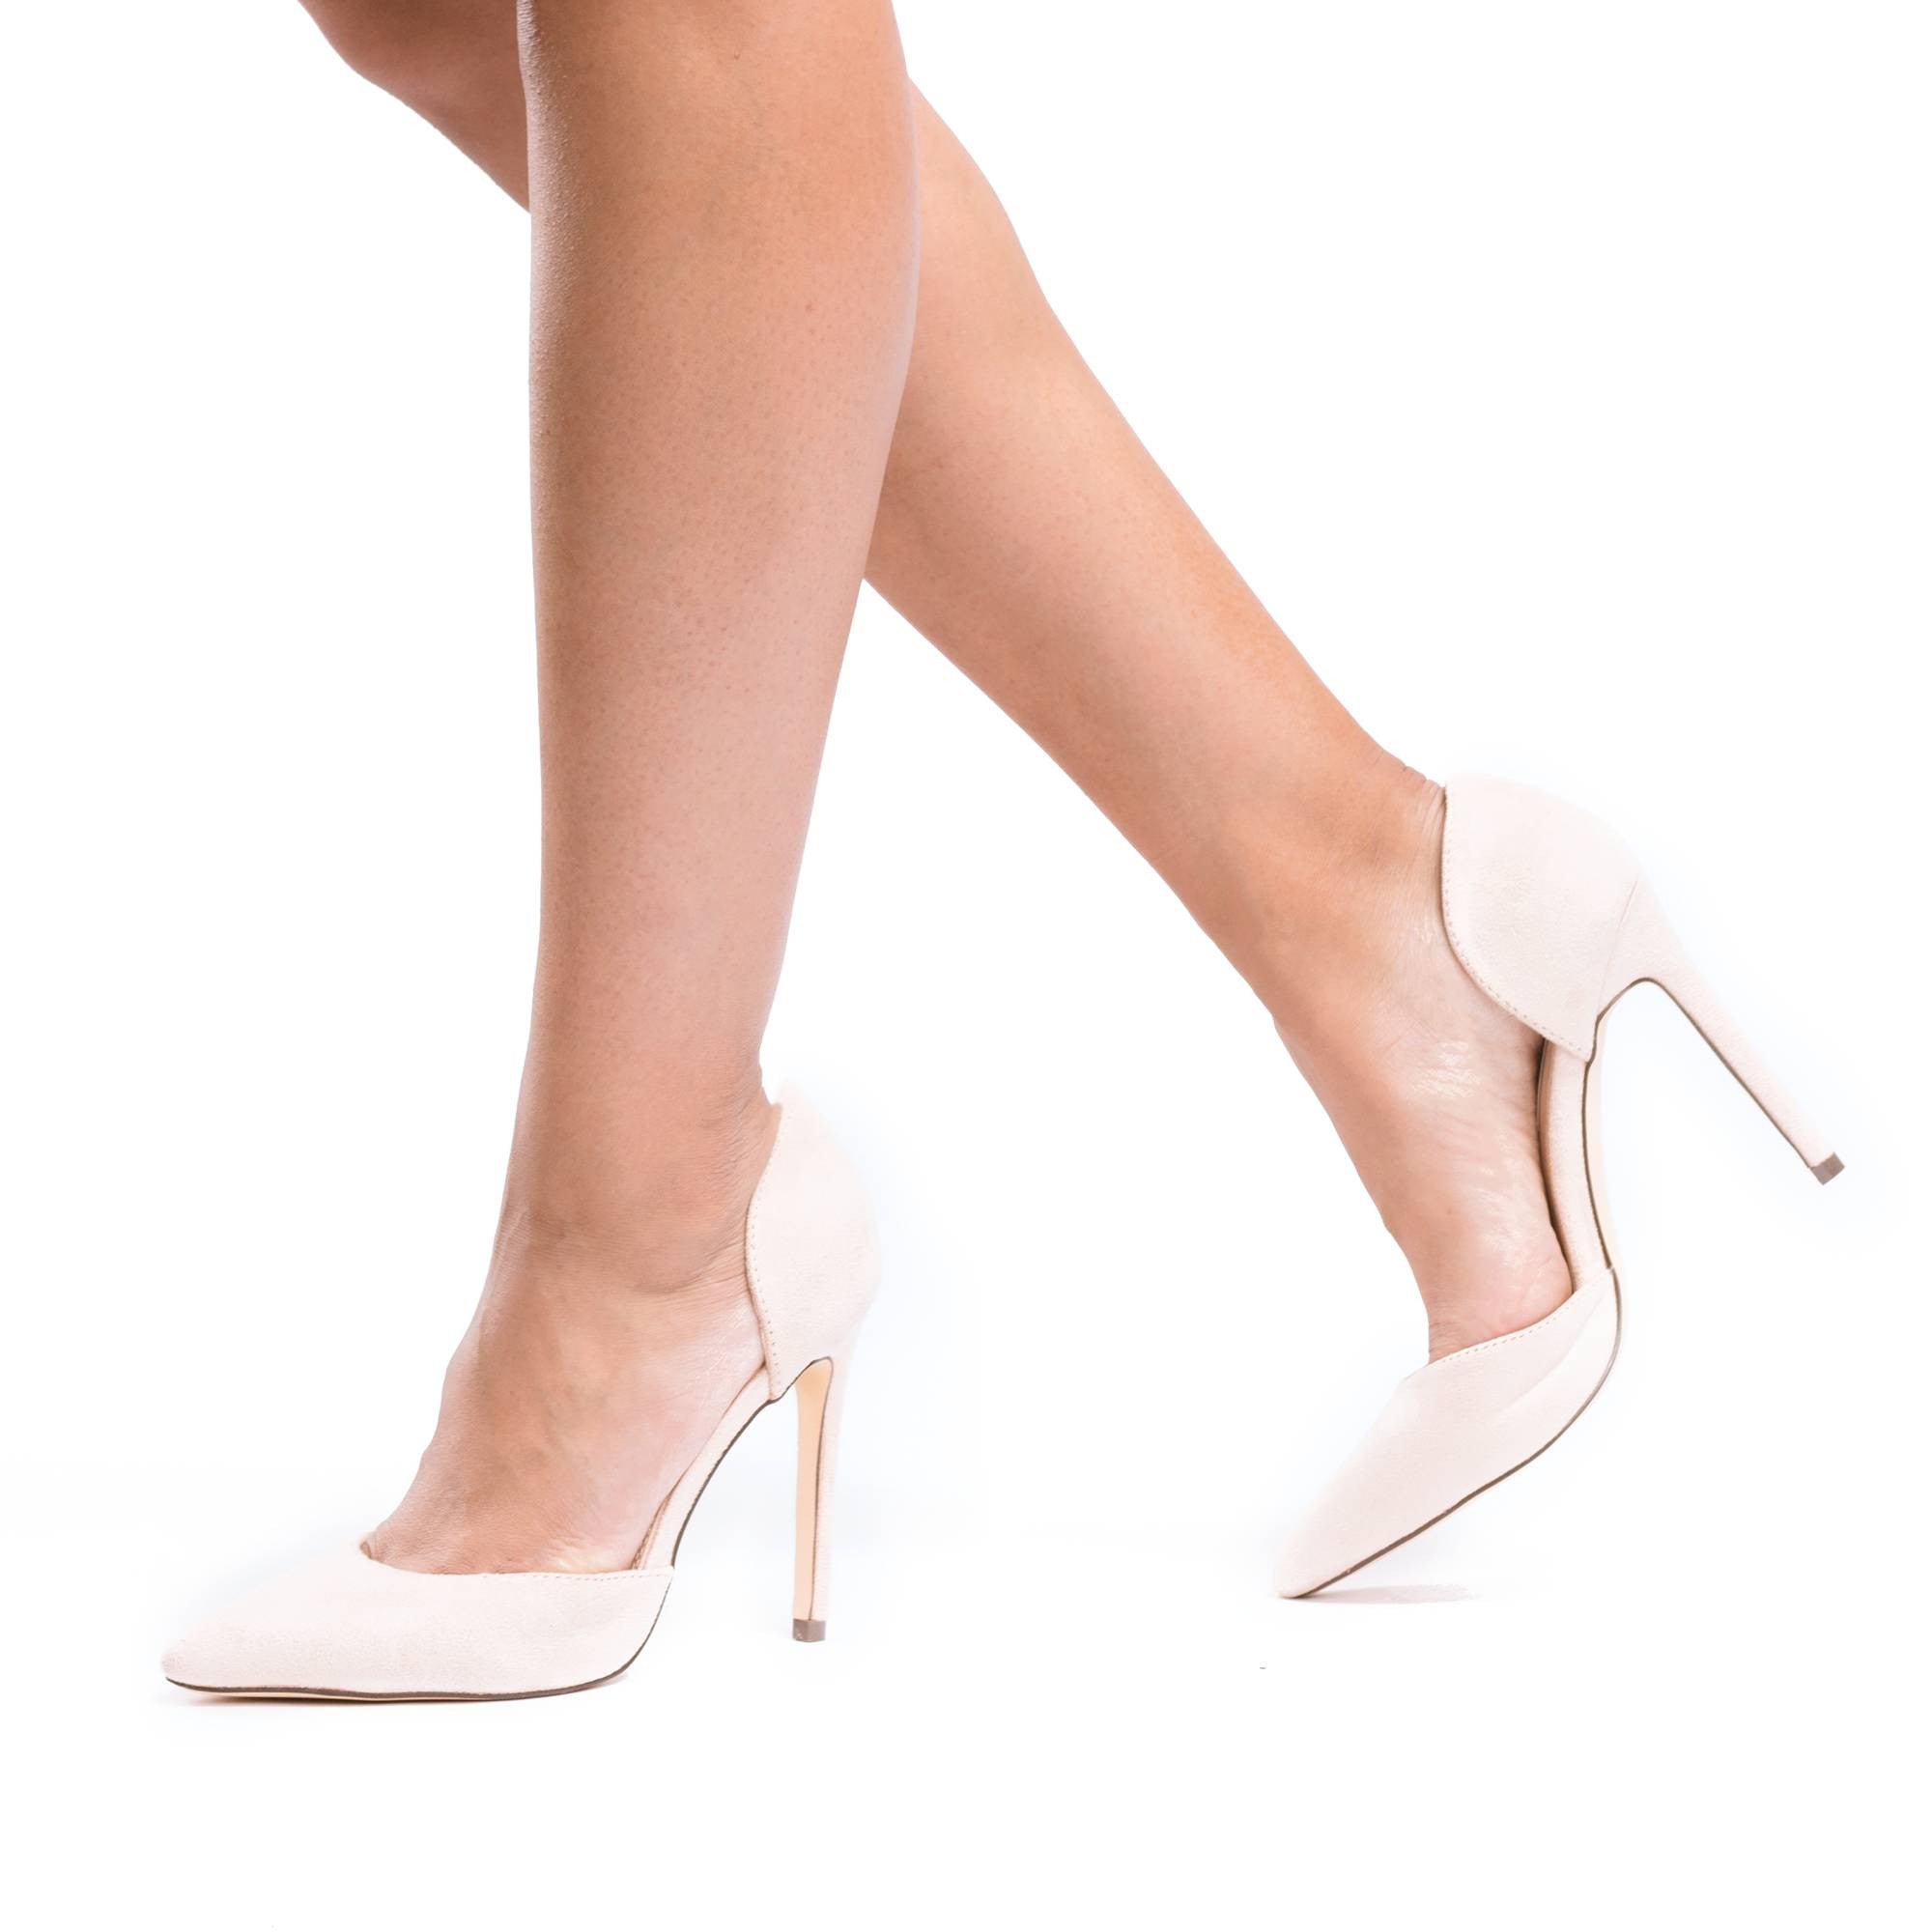 KAYLEE D'orsay Pointed Toe Stiletto